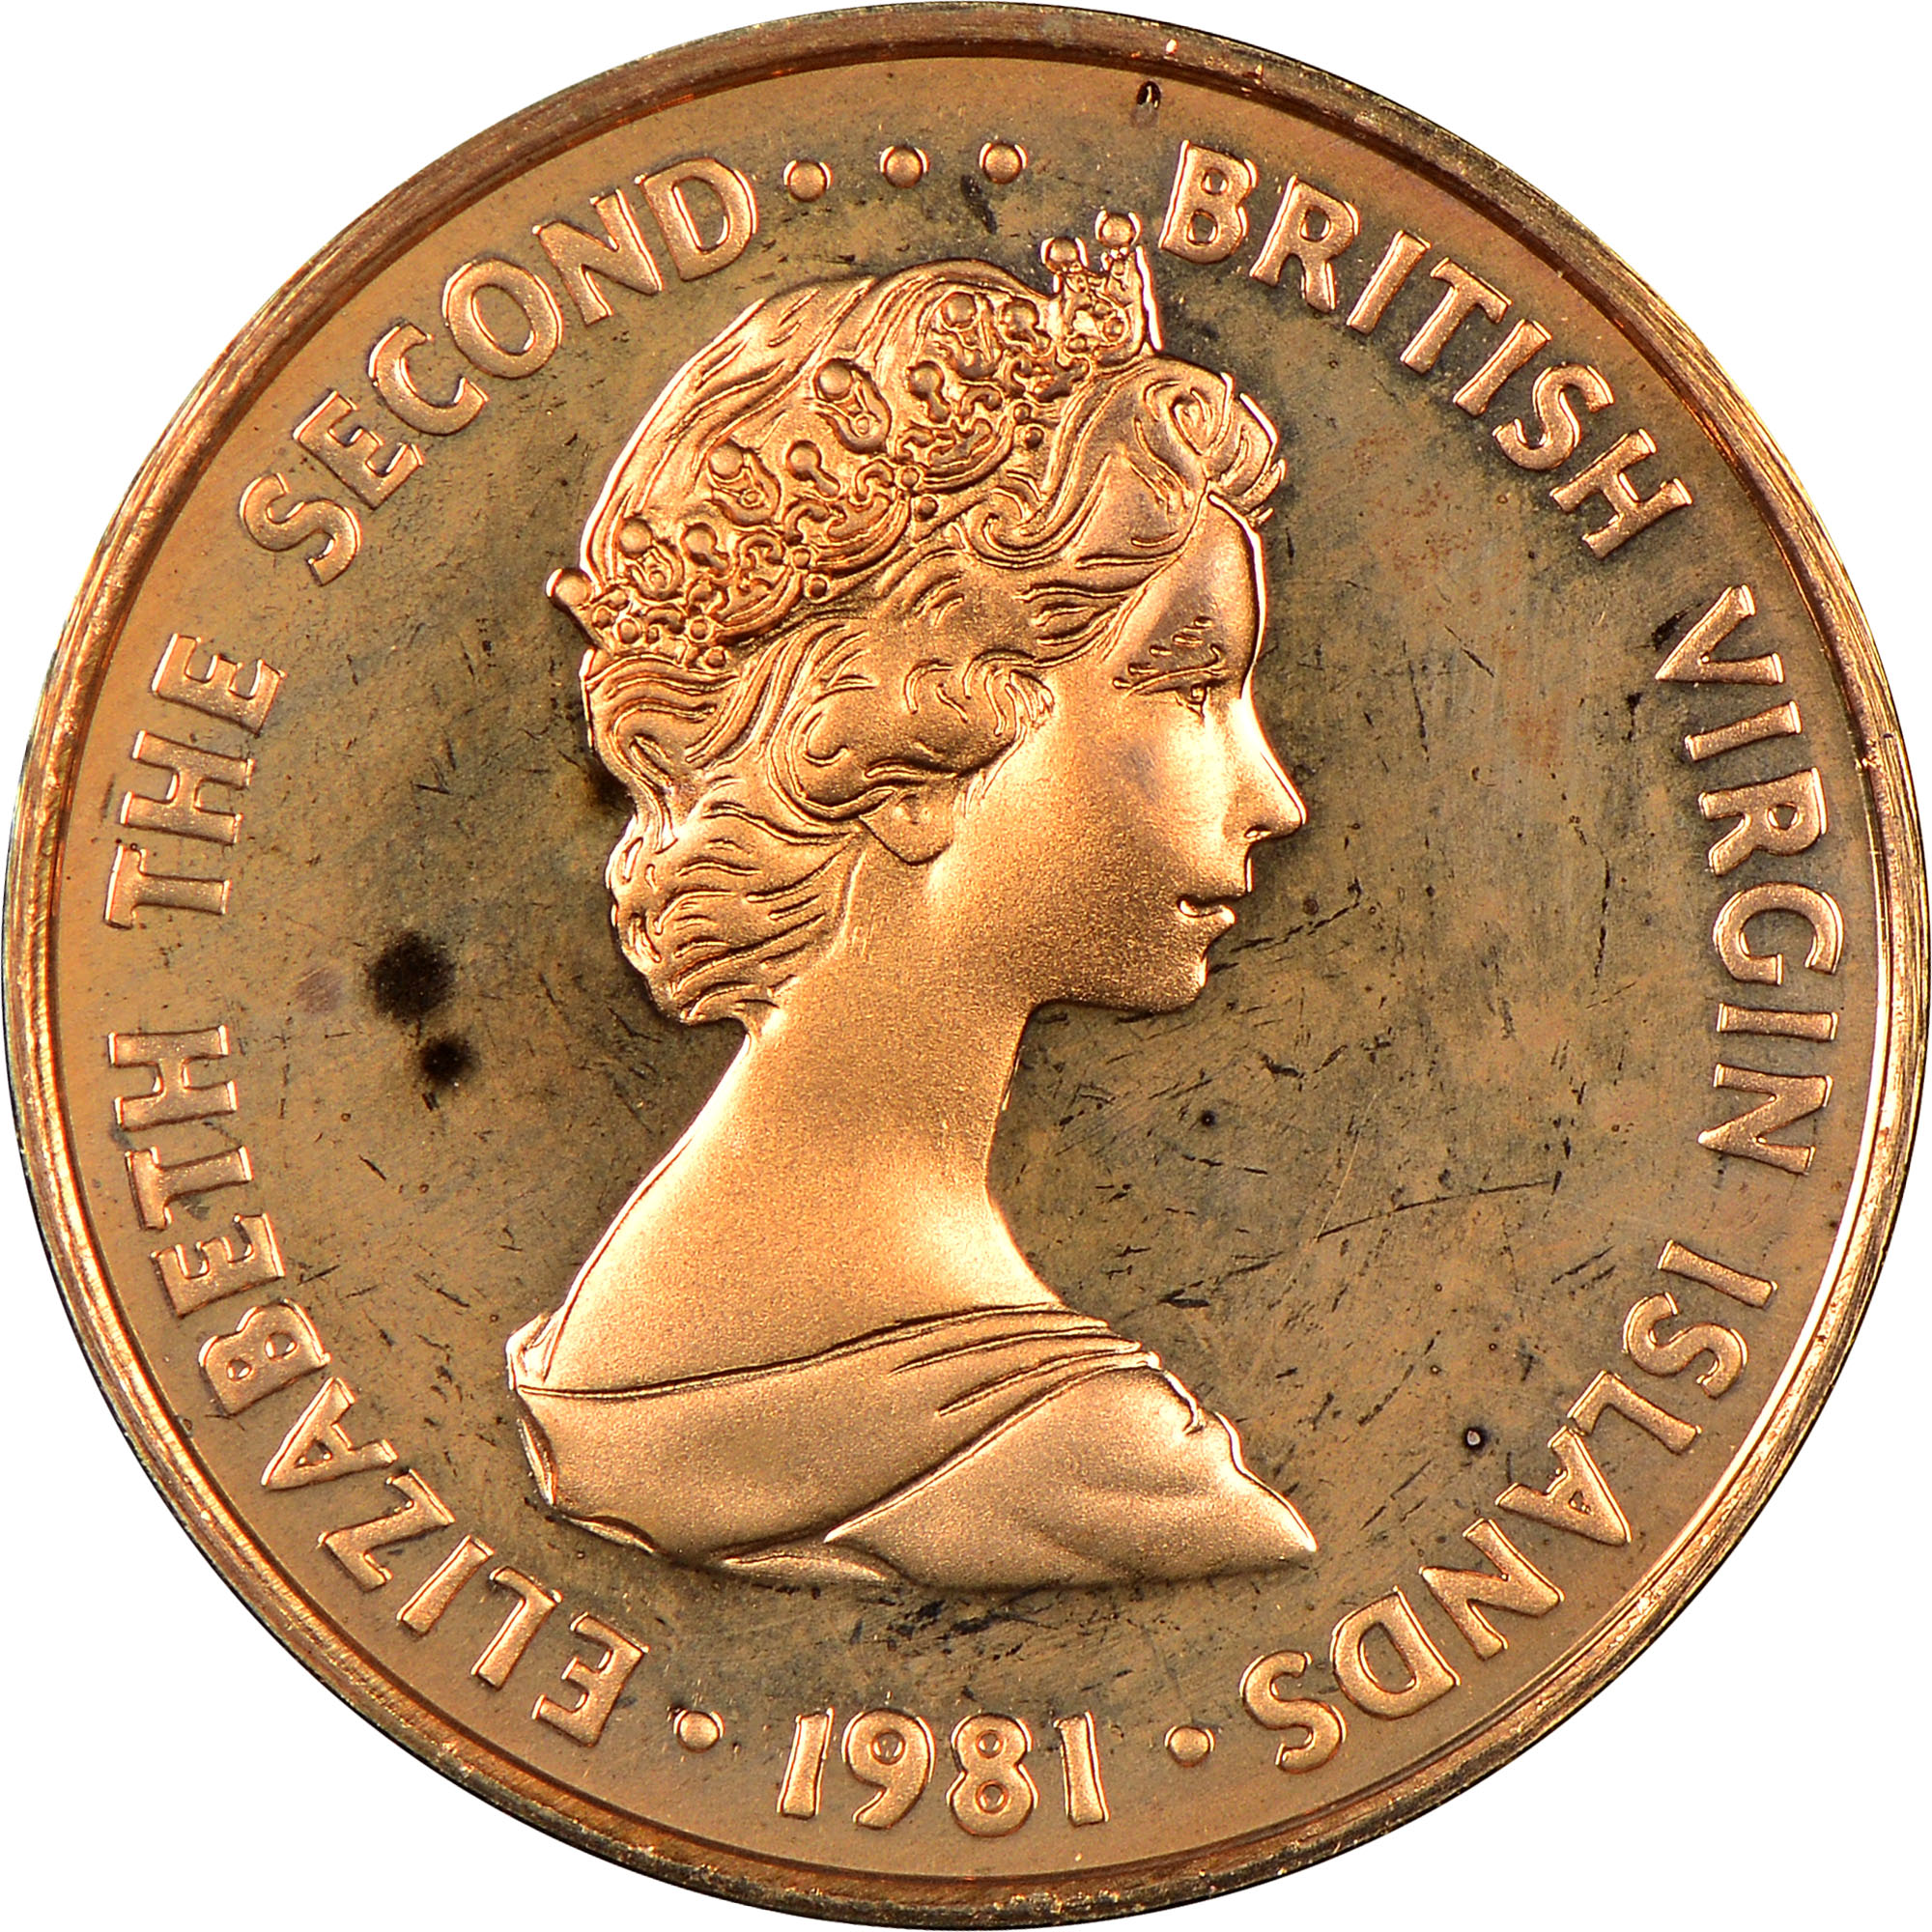 1973-1984 British Virgin Islands Cent obverse